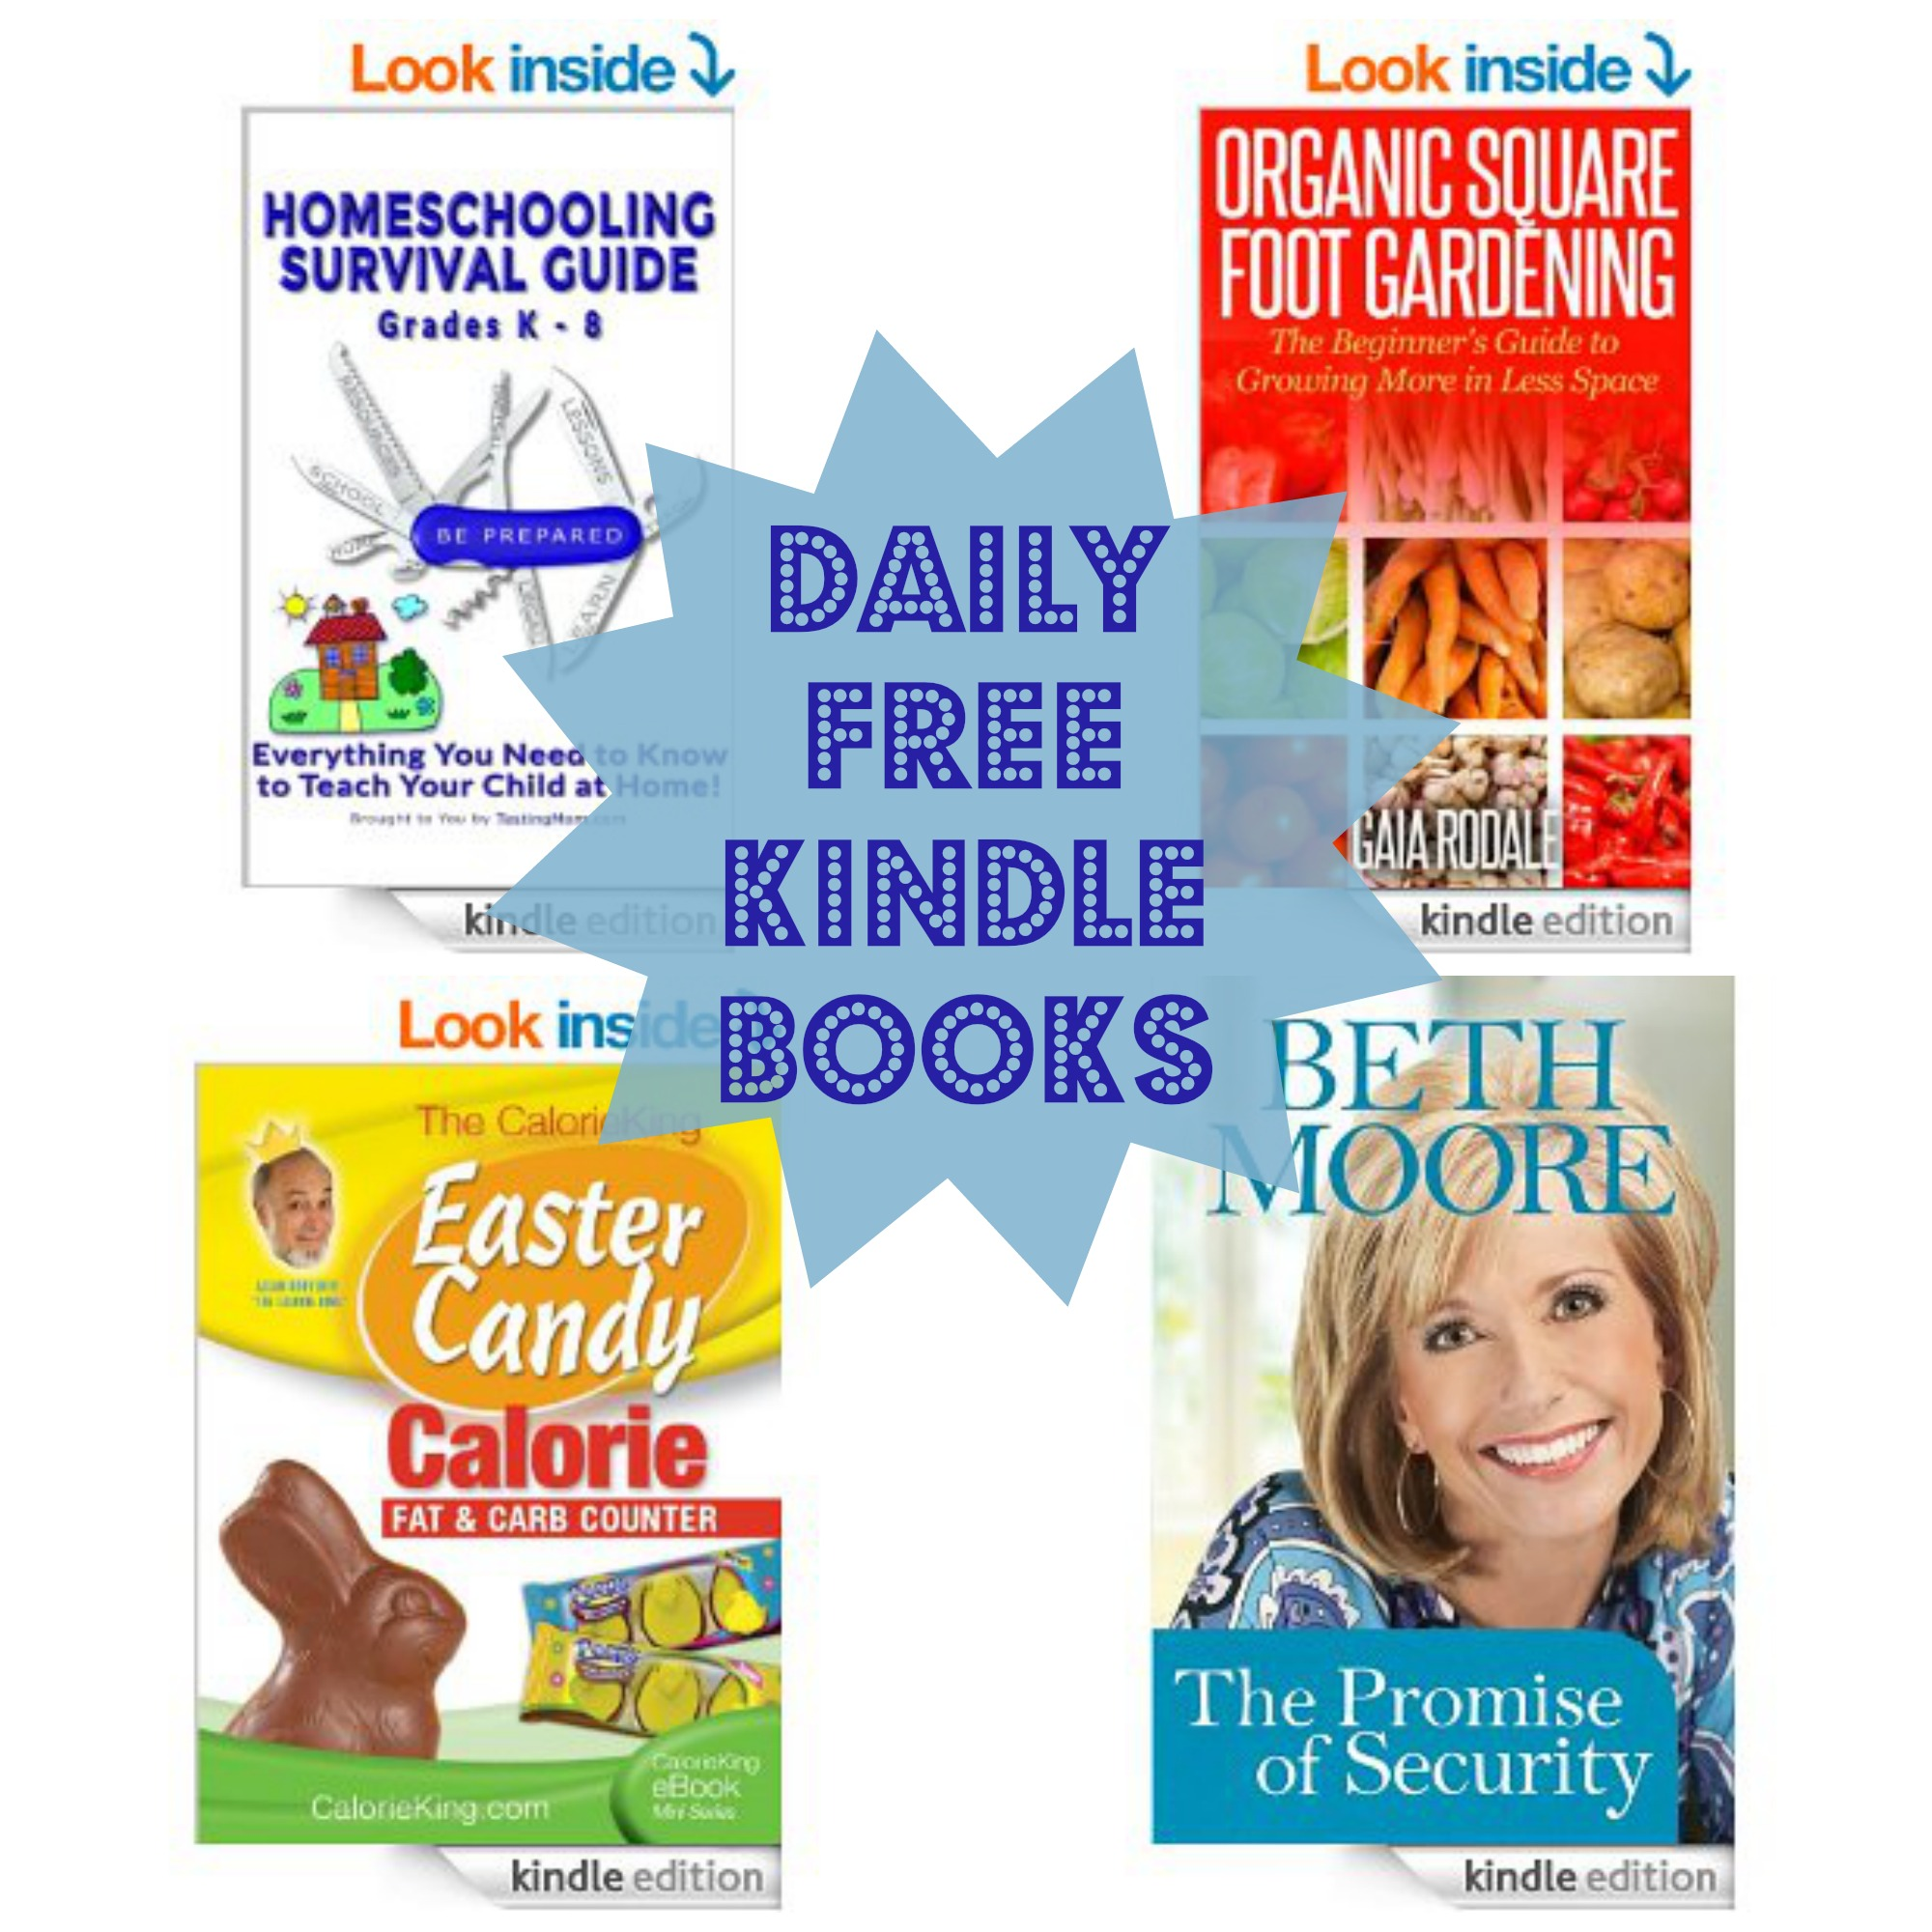 16 Free Kindle Books Homeschooling Survival Guide Codley